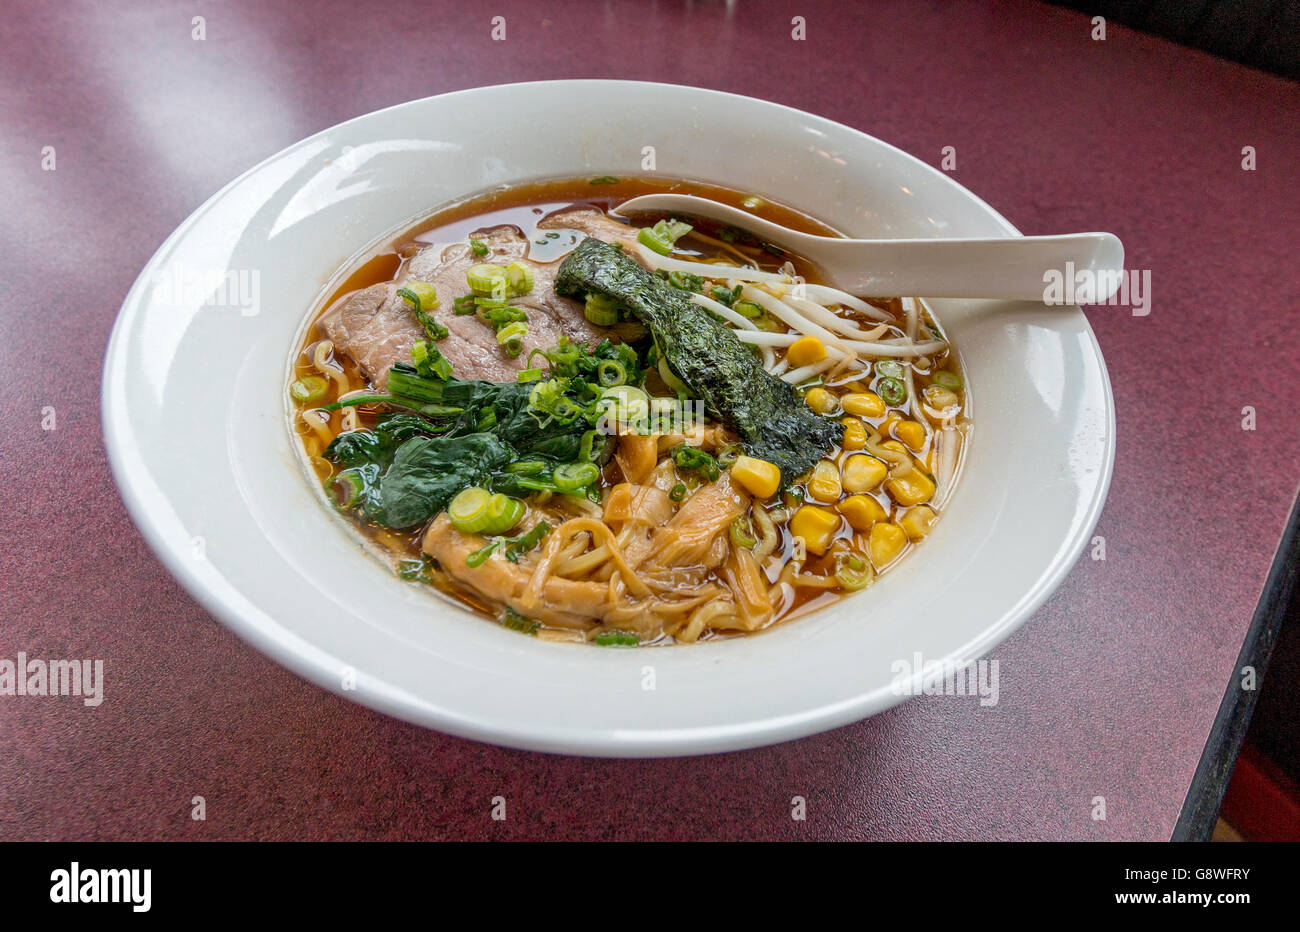 Ramen (also called larmen), here with noodles, meat, corn, vegetables in a broth that takes 6 hours to make. - Stock Image